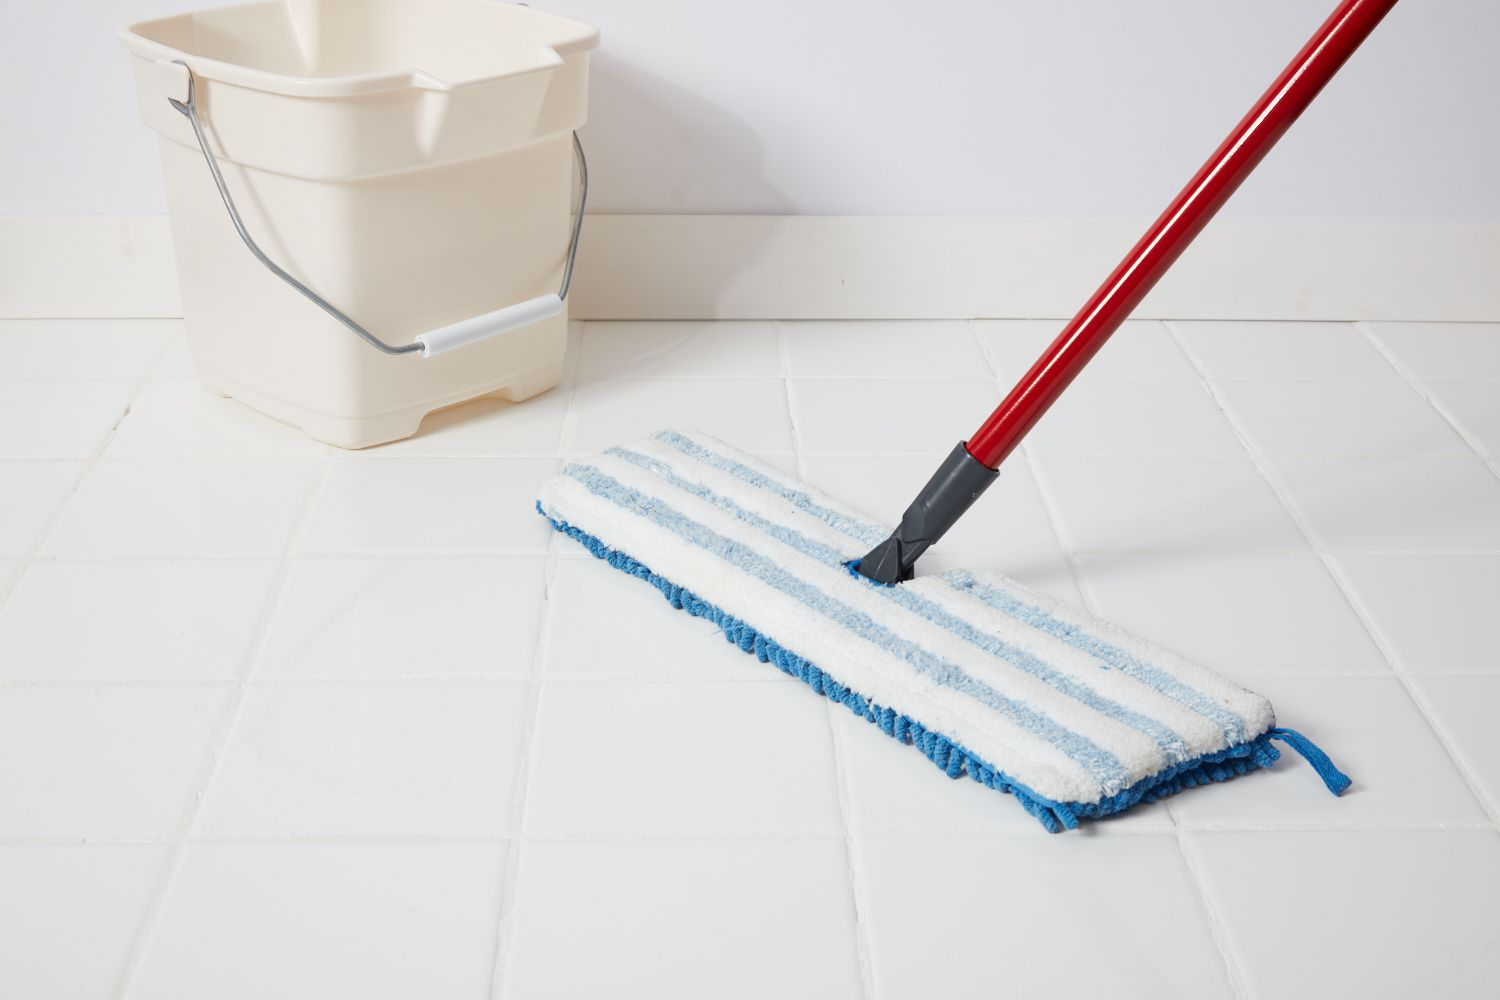 Cleaning tile floor with mop